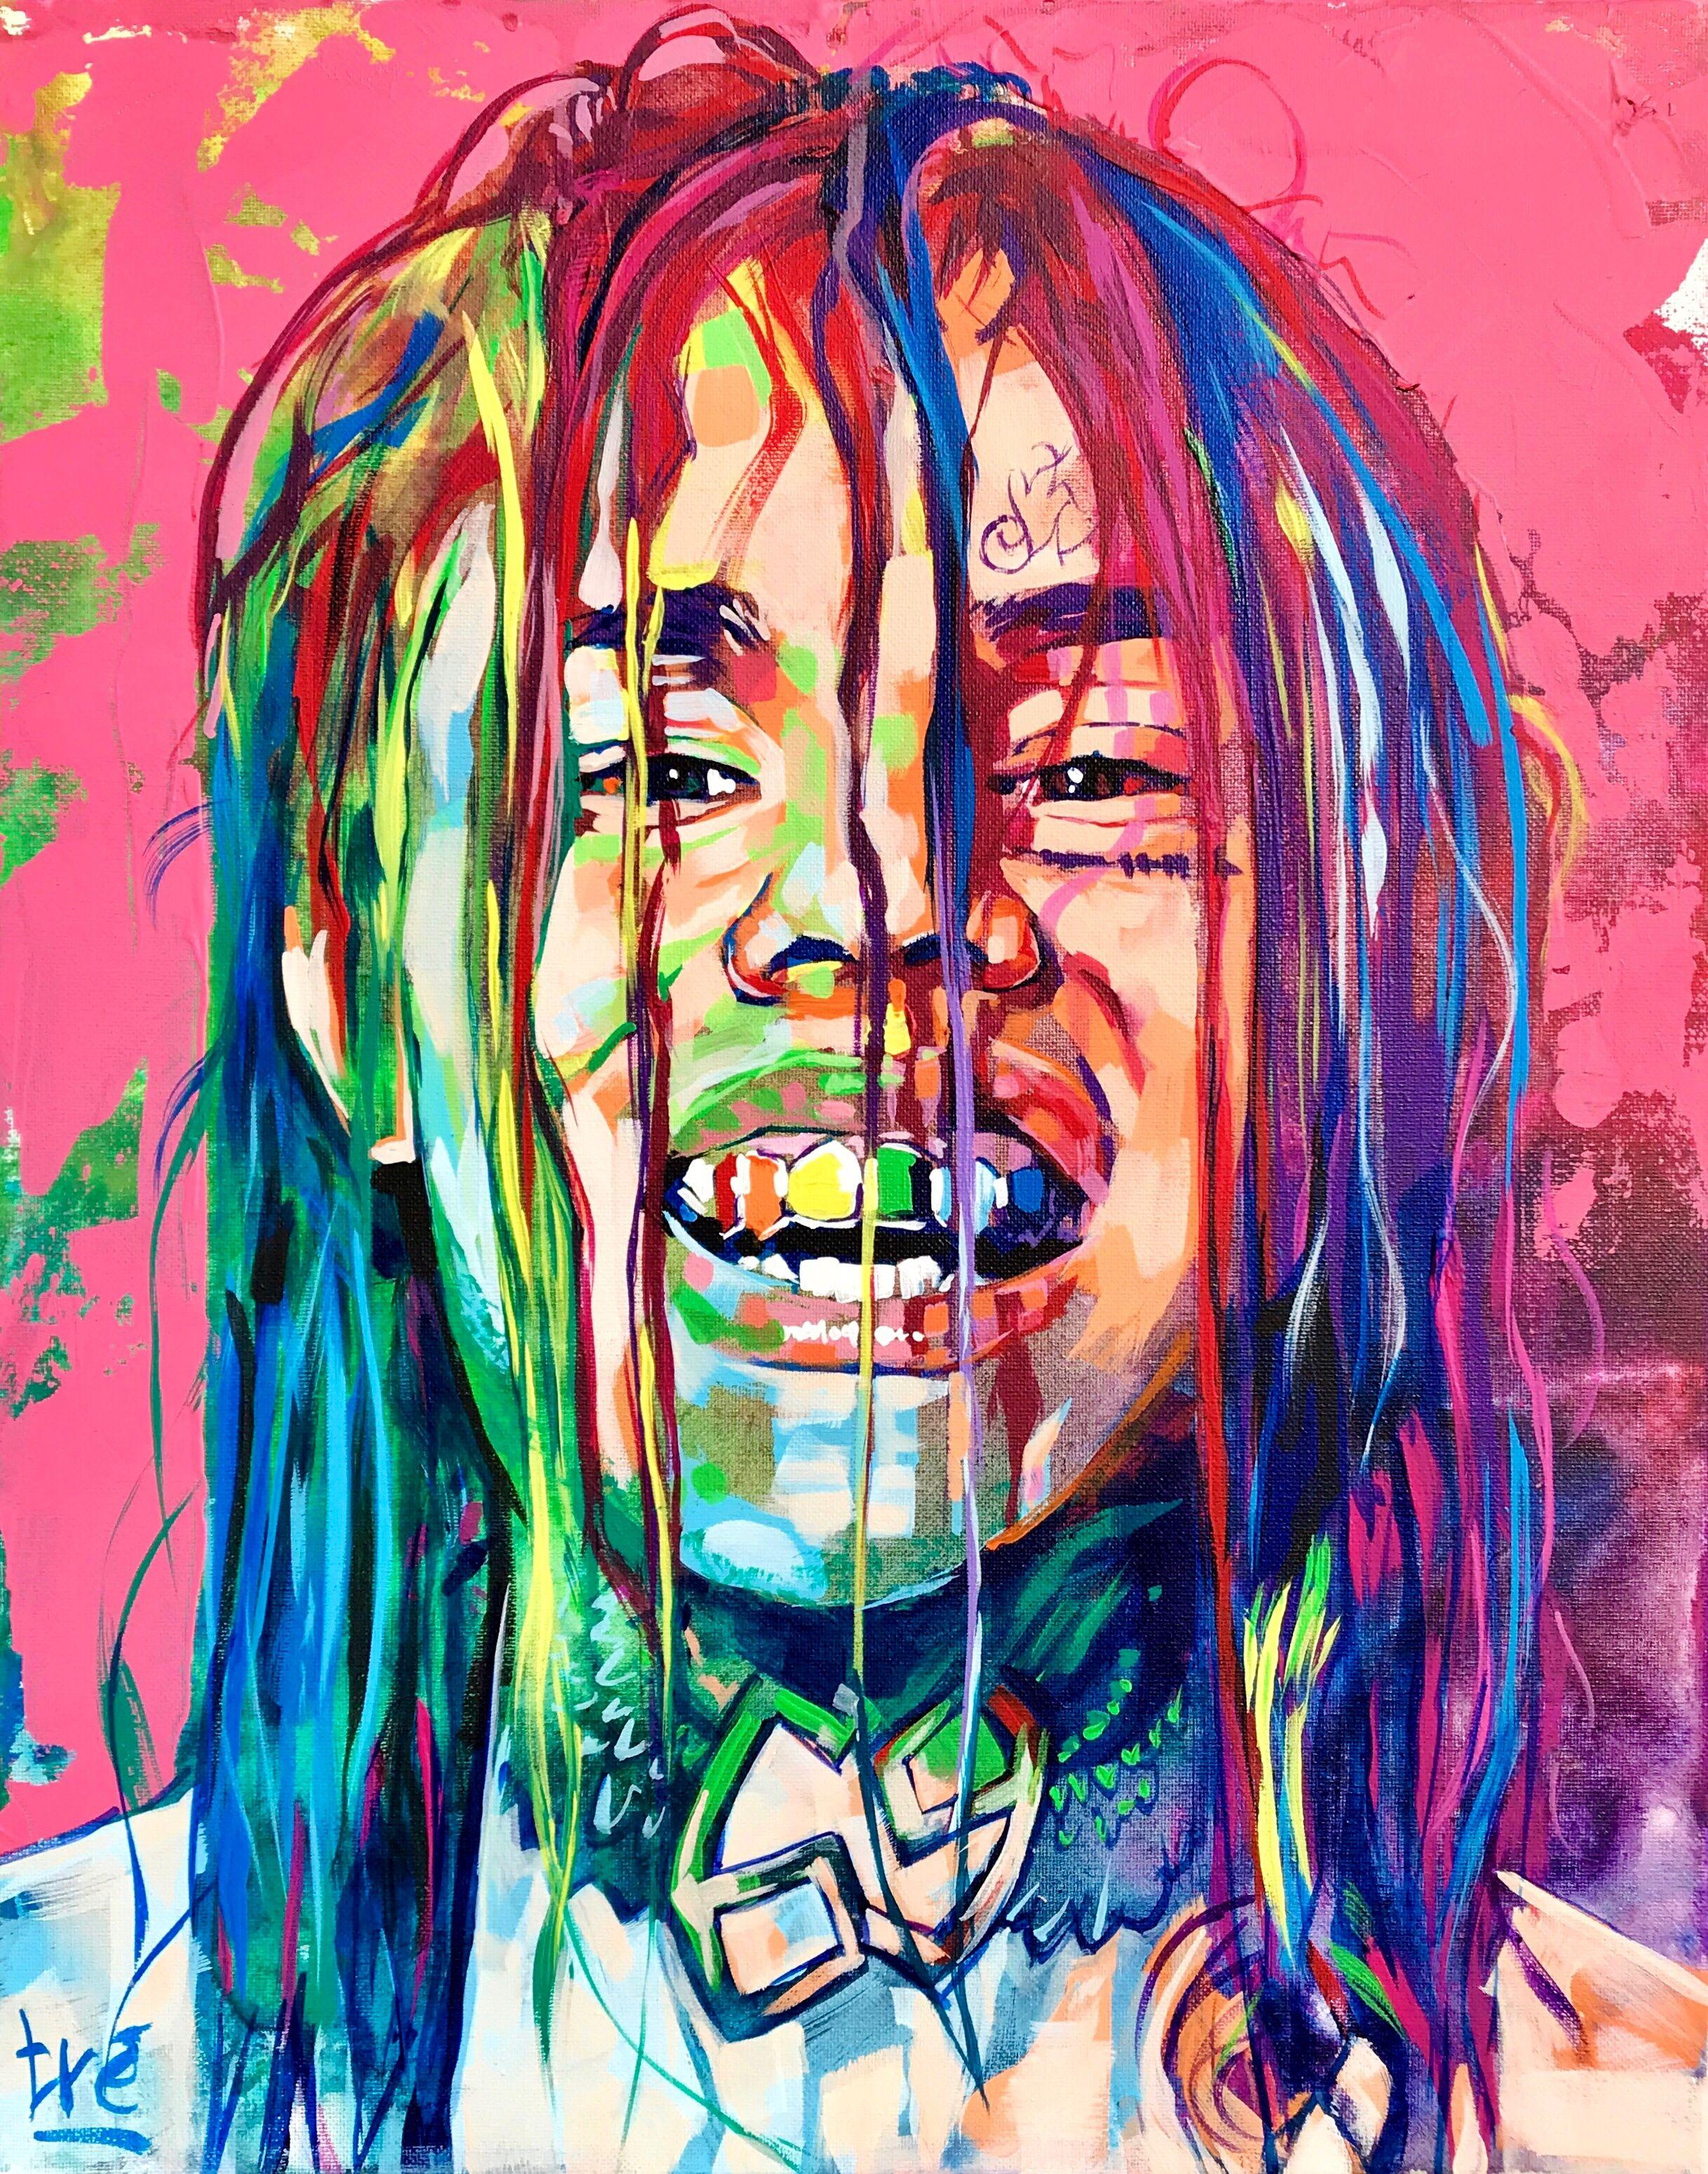 Rap Artist Wallpapers 33 image collections of wallpapers 2436x3101